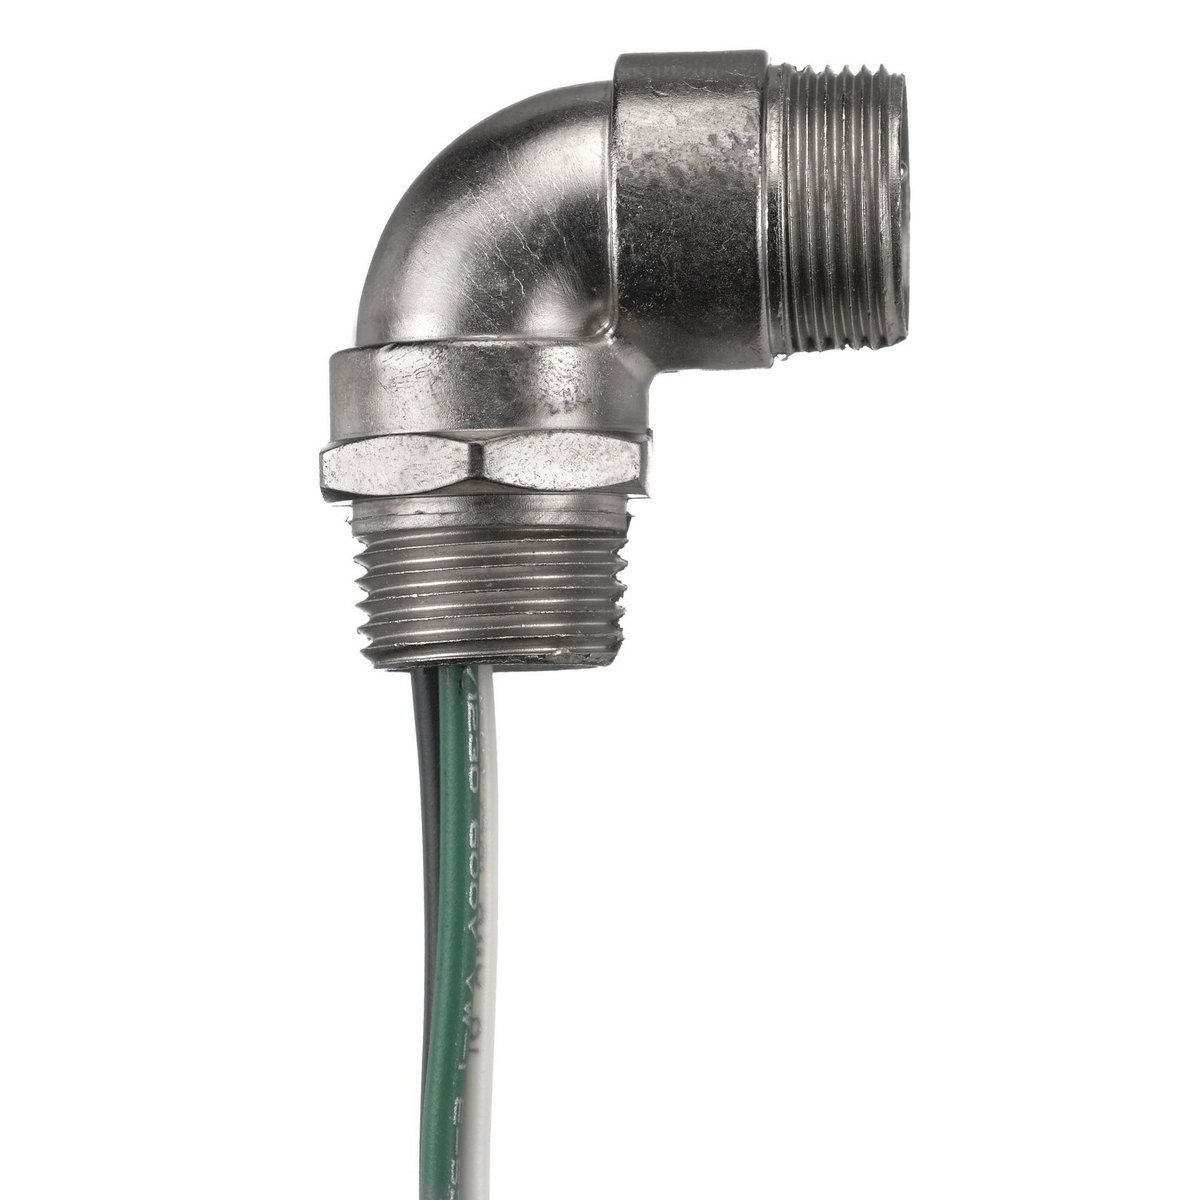 Hubbell HBMA06501 Mini-Quick, ML ANG Receptacle, MET, 6P, 16/6, 1'